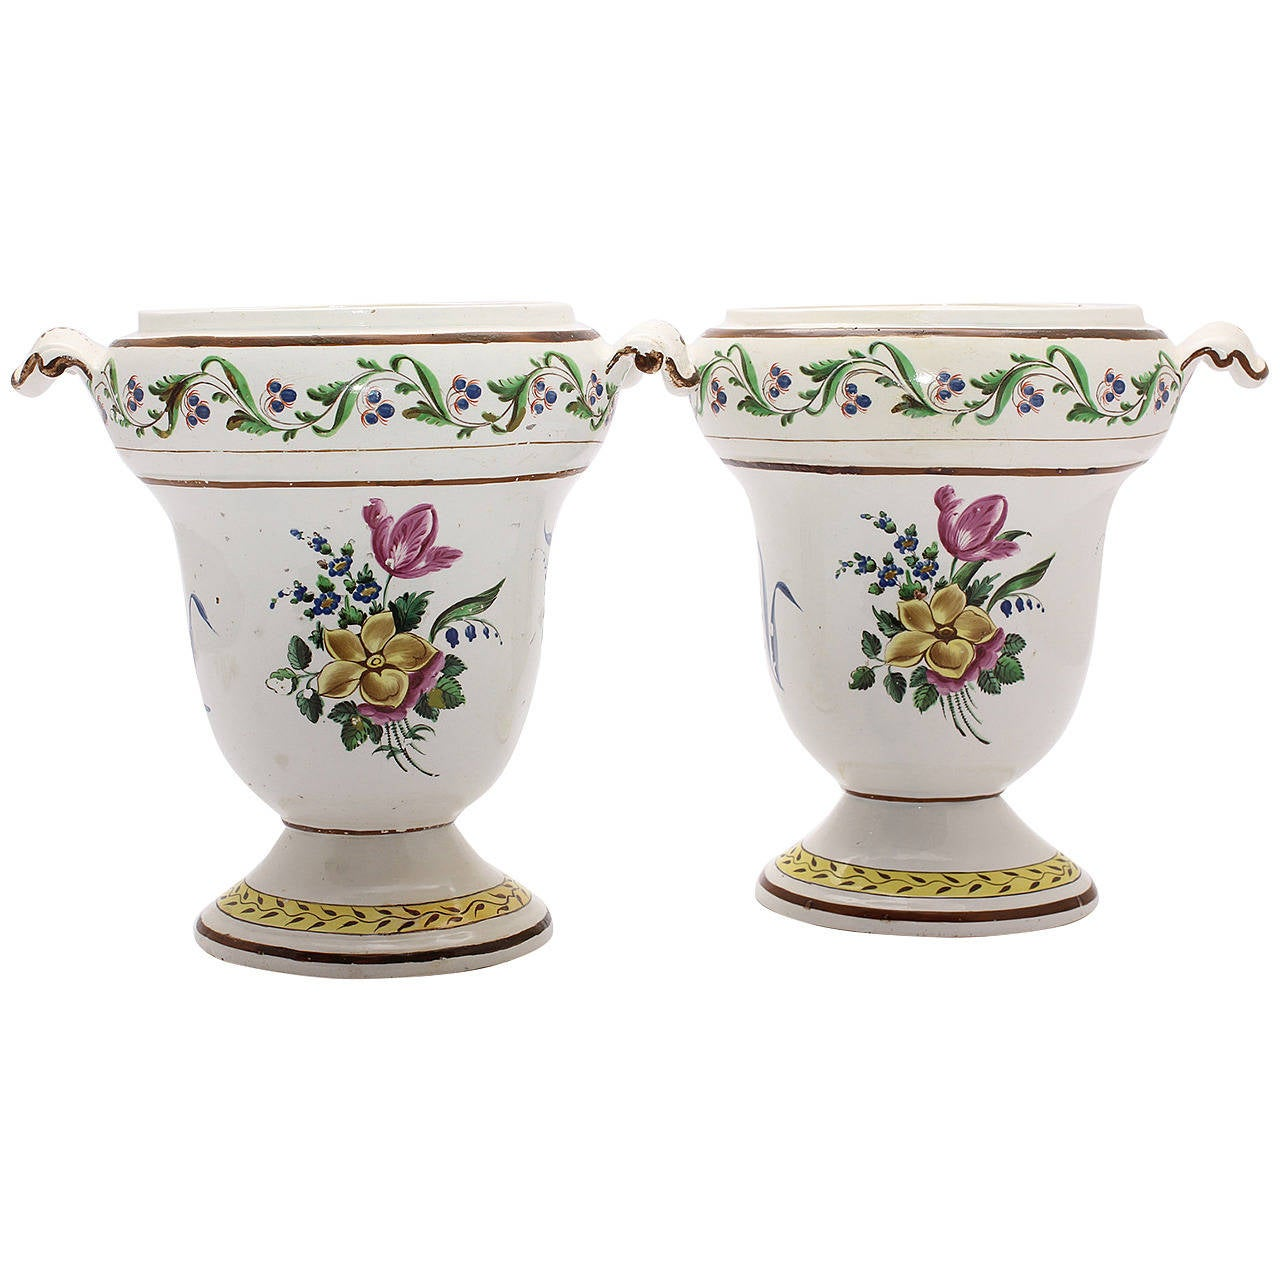 Pair of French Creamware Vases, Flower Decoration, circa 1800 For Sale